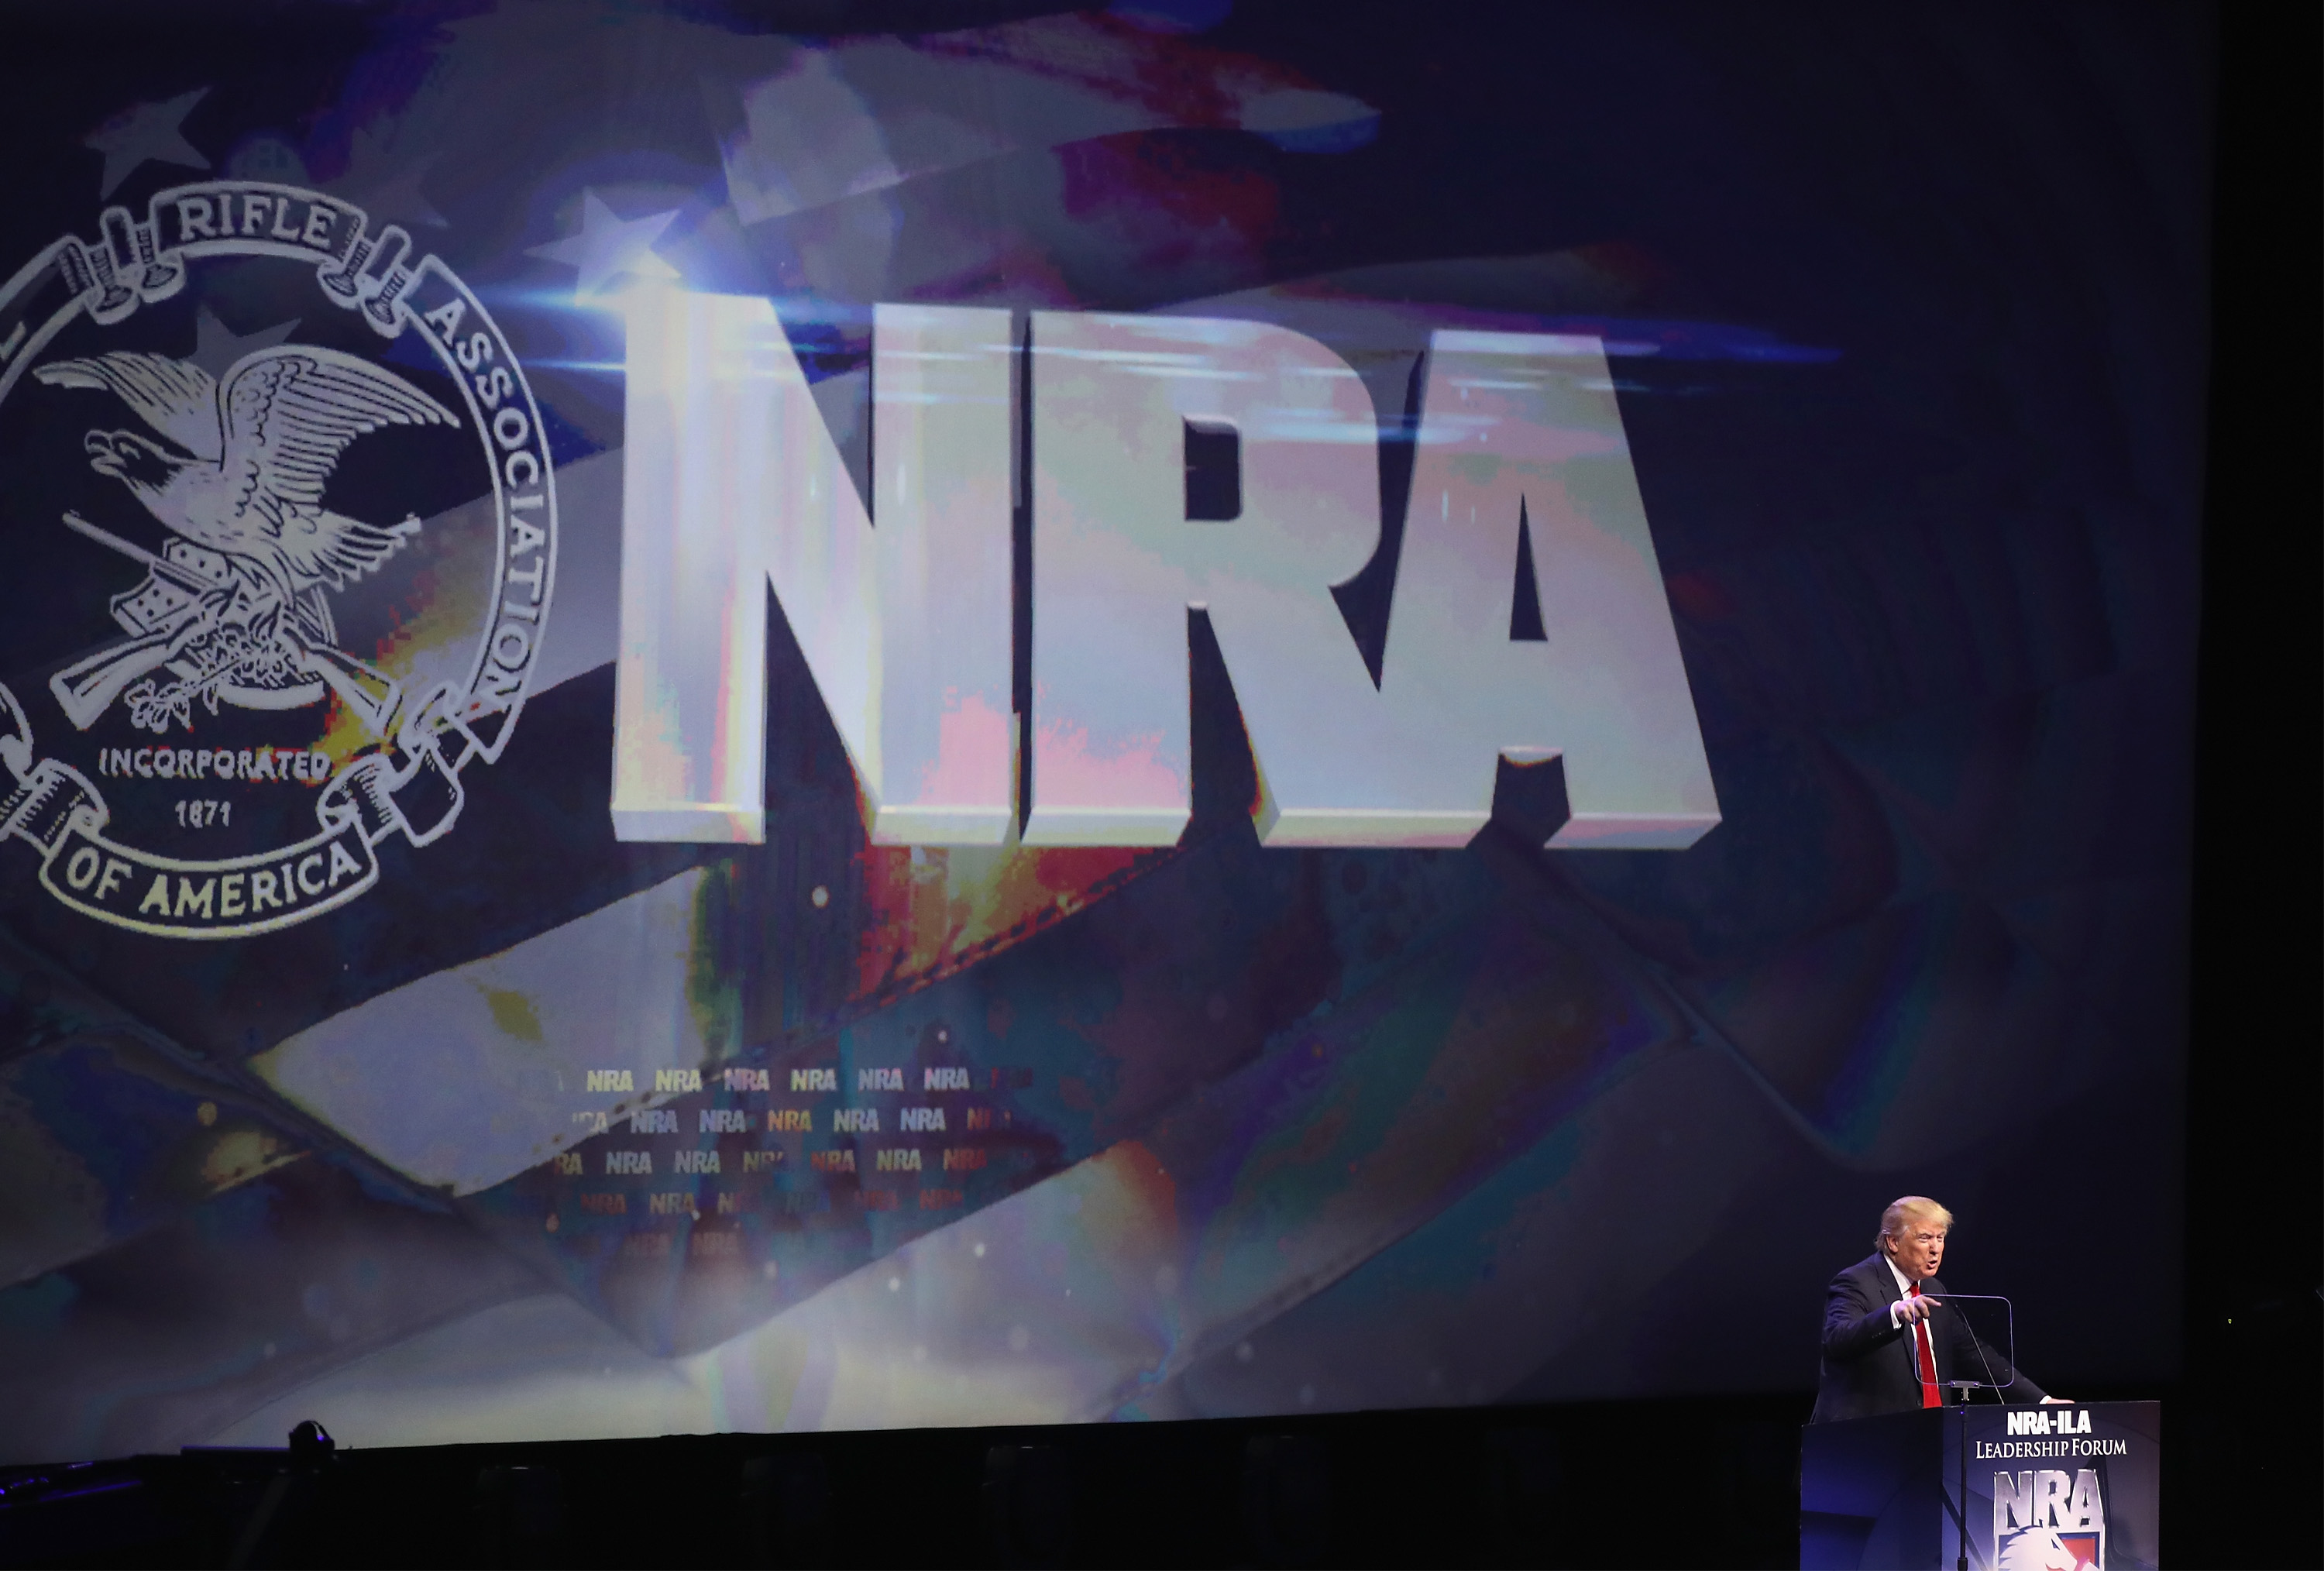 LOUISVILLE, KY - MAY 20: Republican presidential candidate Donald Trump speaks at the National Rifle Association's NRA-ILA Leadership Forum during the NRA Convention at the Kentucky Exposition Center on May 20, 2016 in Louisville, Kentucky. The NRA endorsed Trump at the convention. The convention runs May 22. (Photo by Scott Olson/Getty Images)